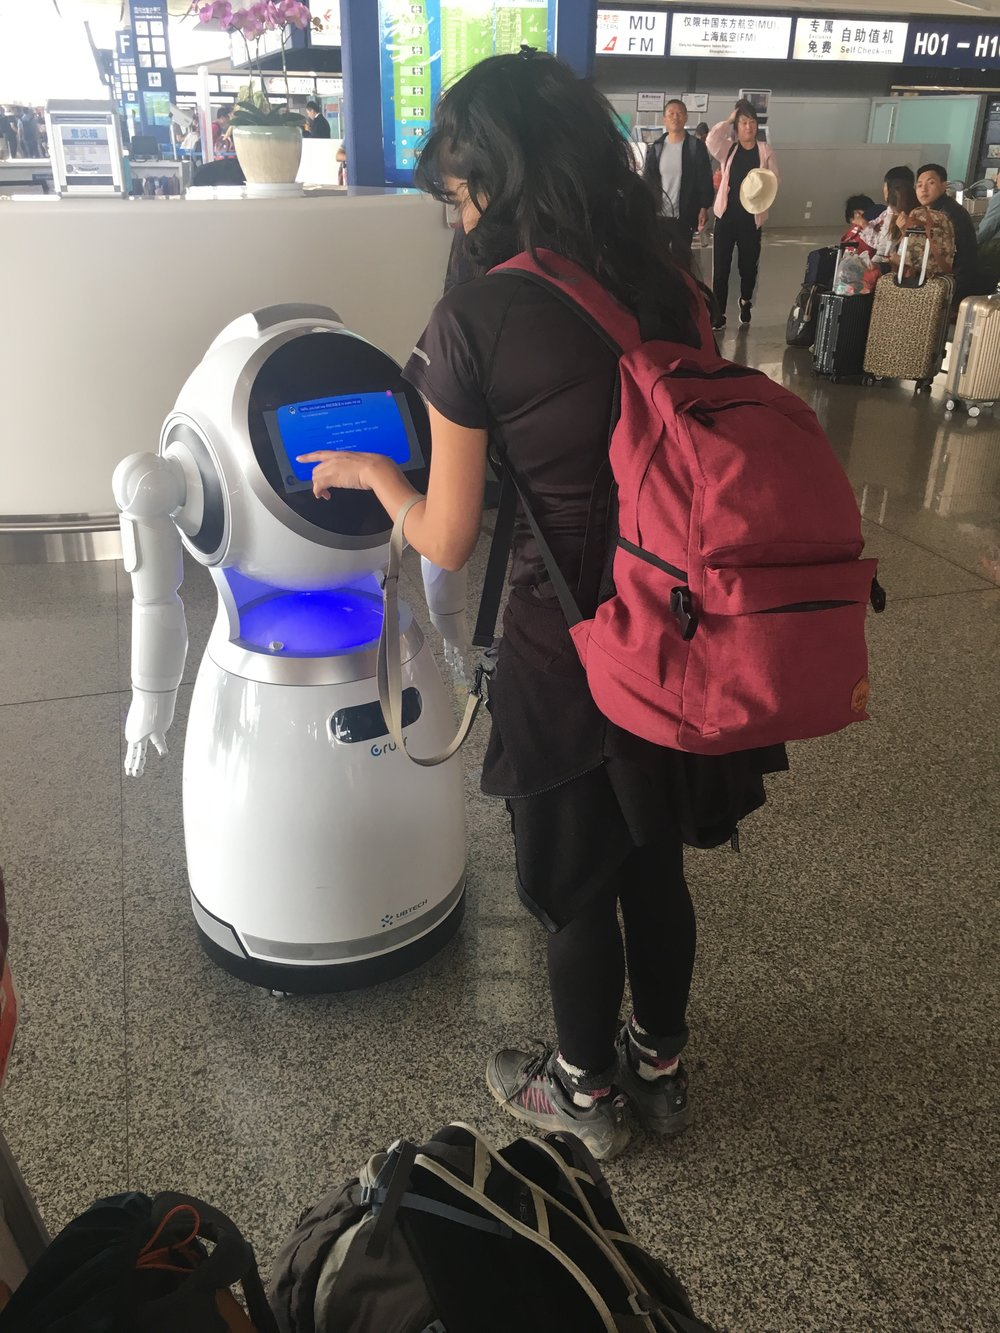 The robot can dance, sing along and help you find yourself in the airport only at normal hours, not past midnight.